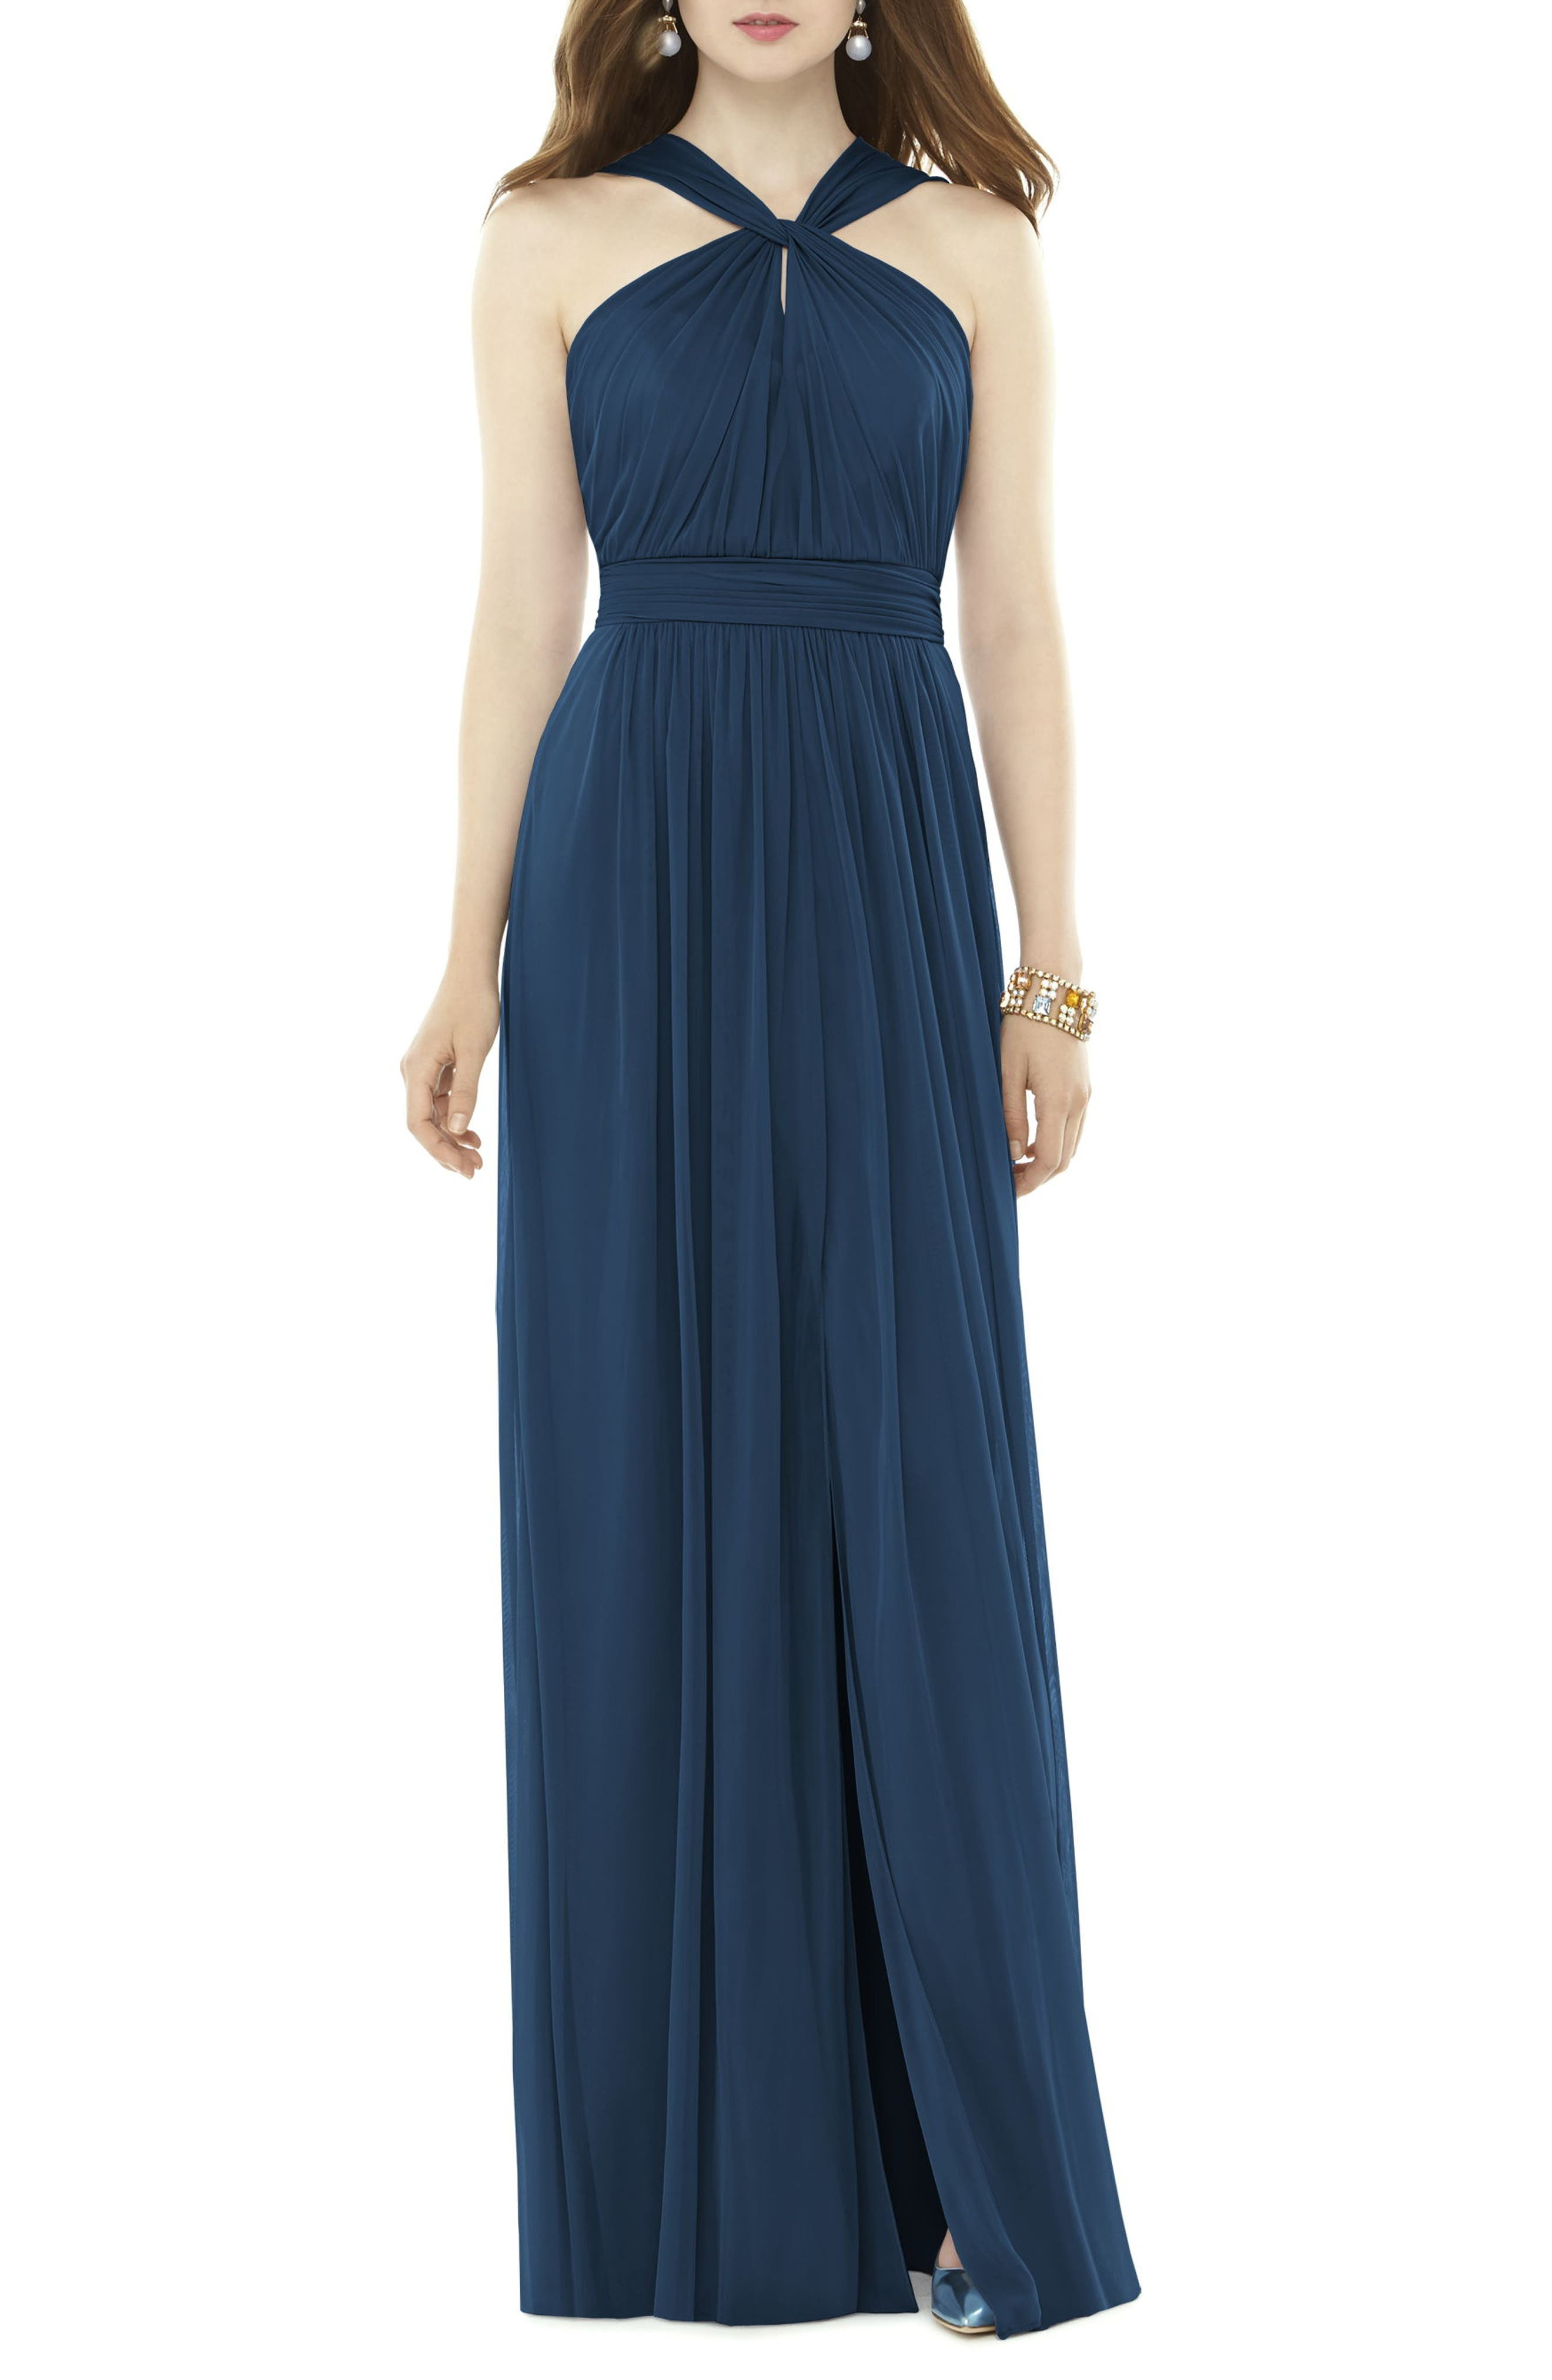 Alternate Image 1 Selected - Alfred Sung Twist Neck Chiffon Knit Gown